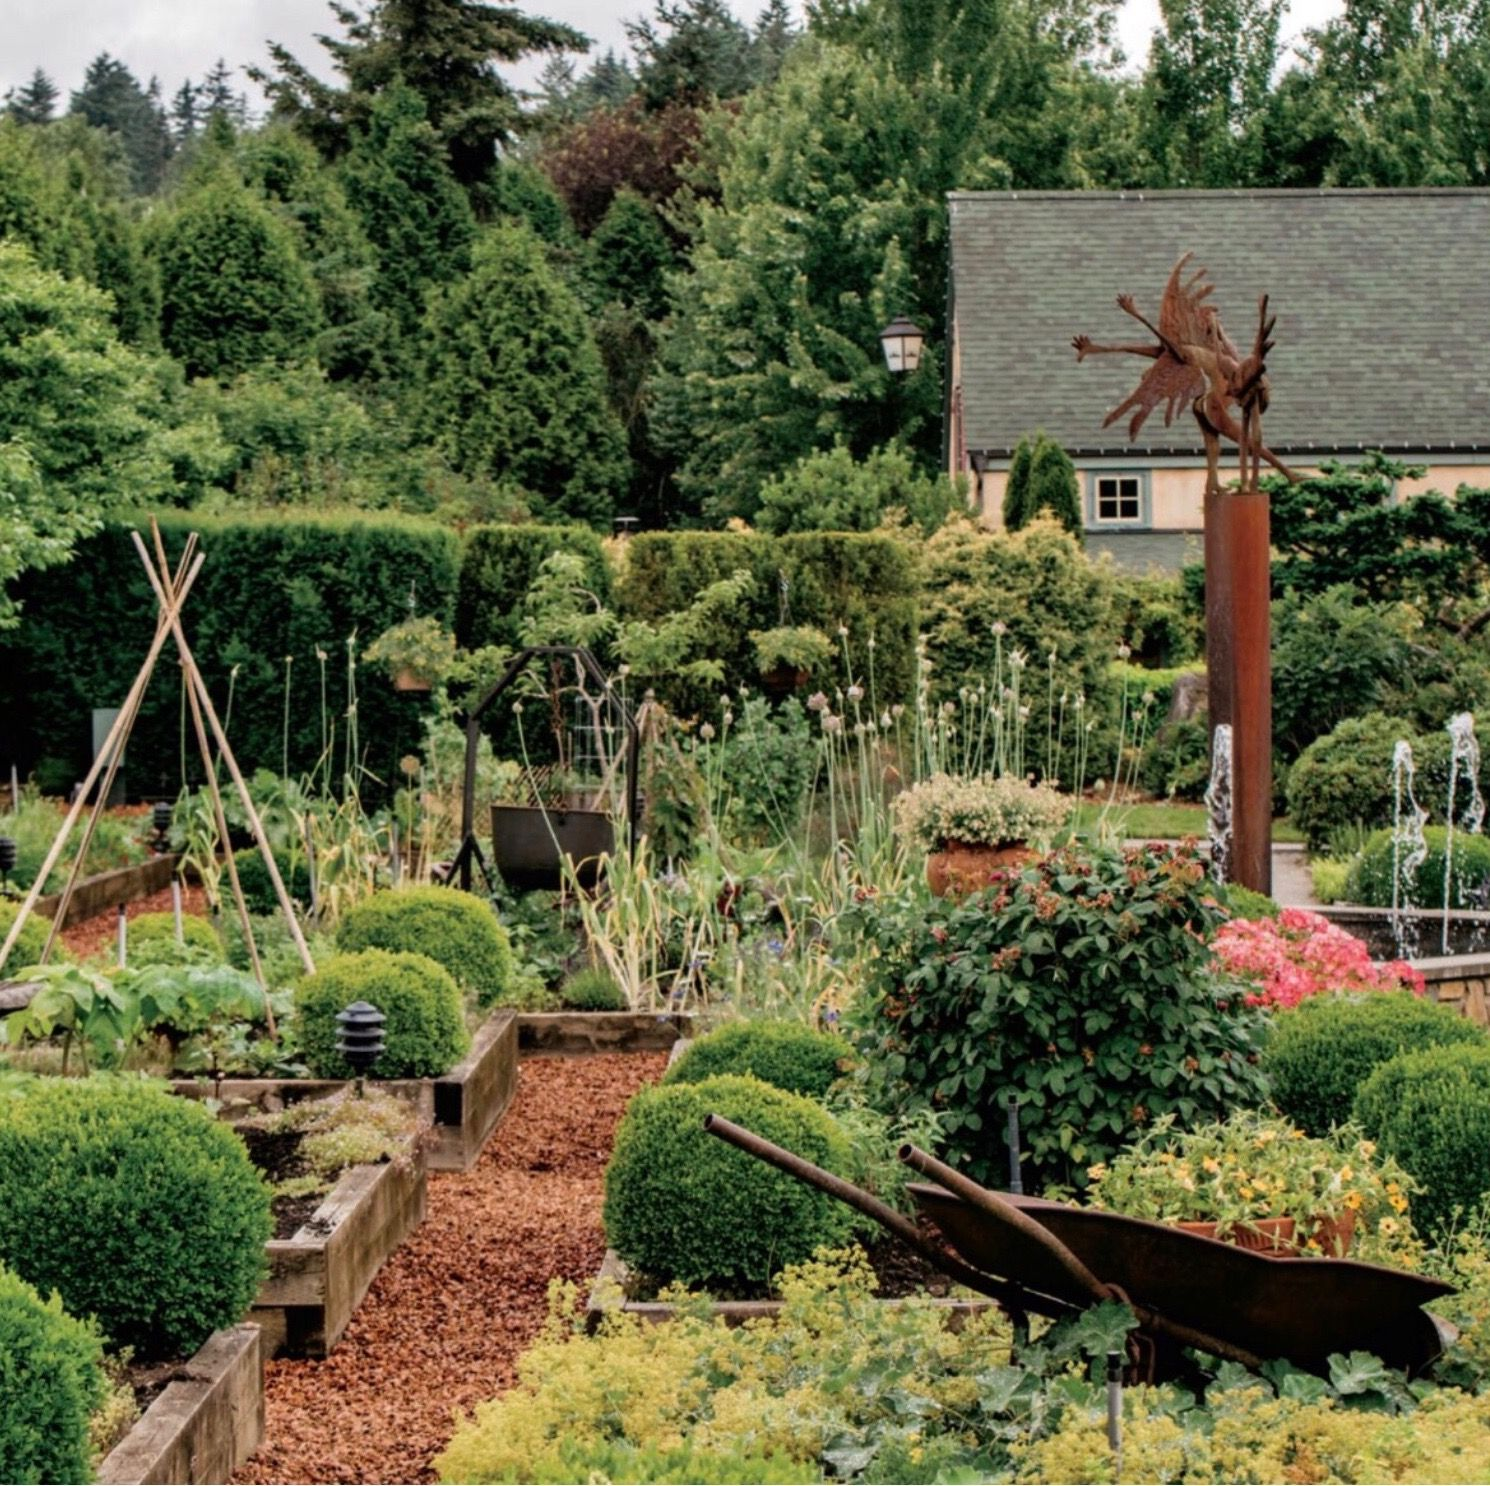 2 fantastic ideas in this garden 1) Have raised beds for